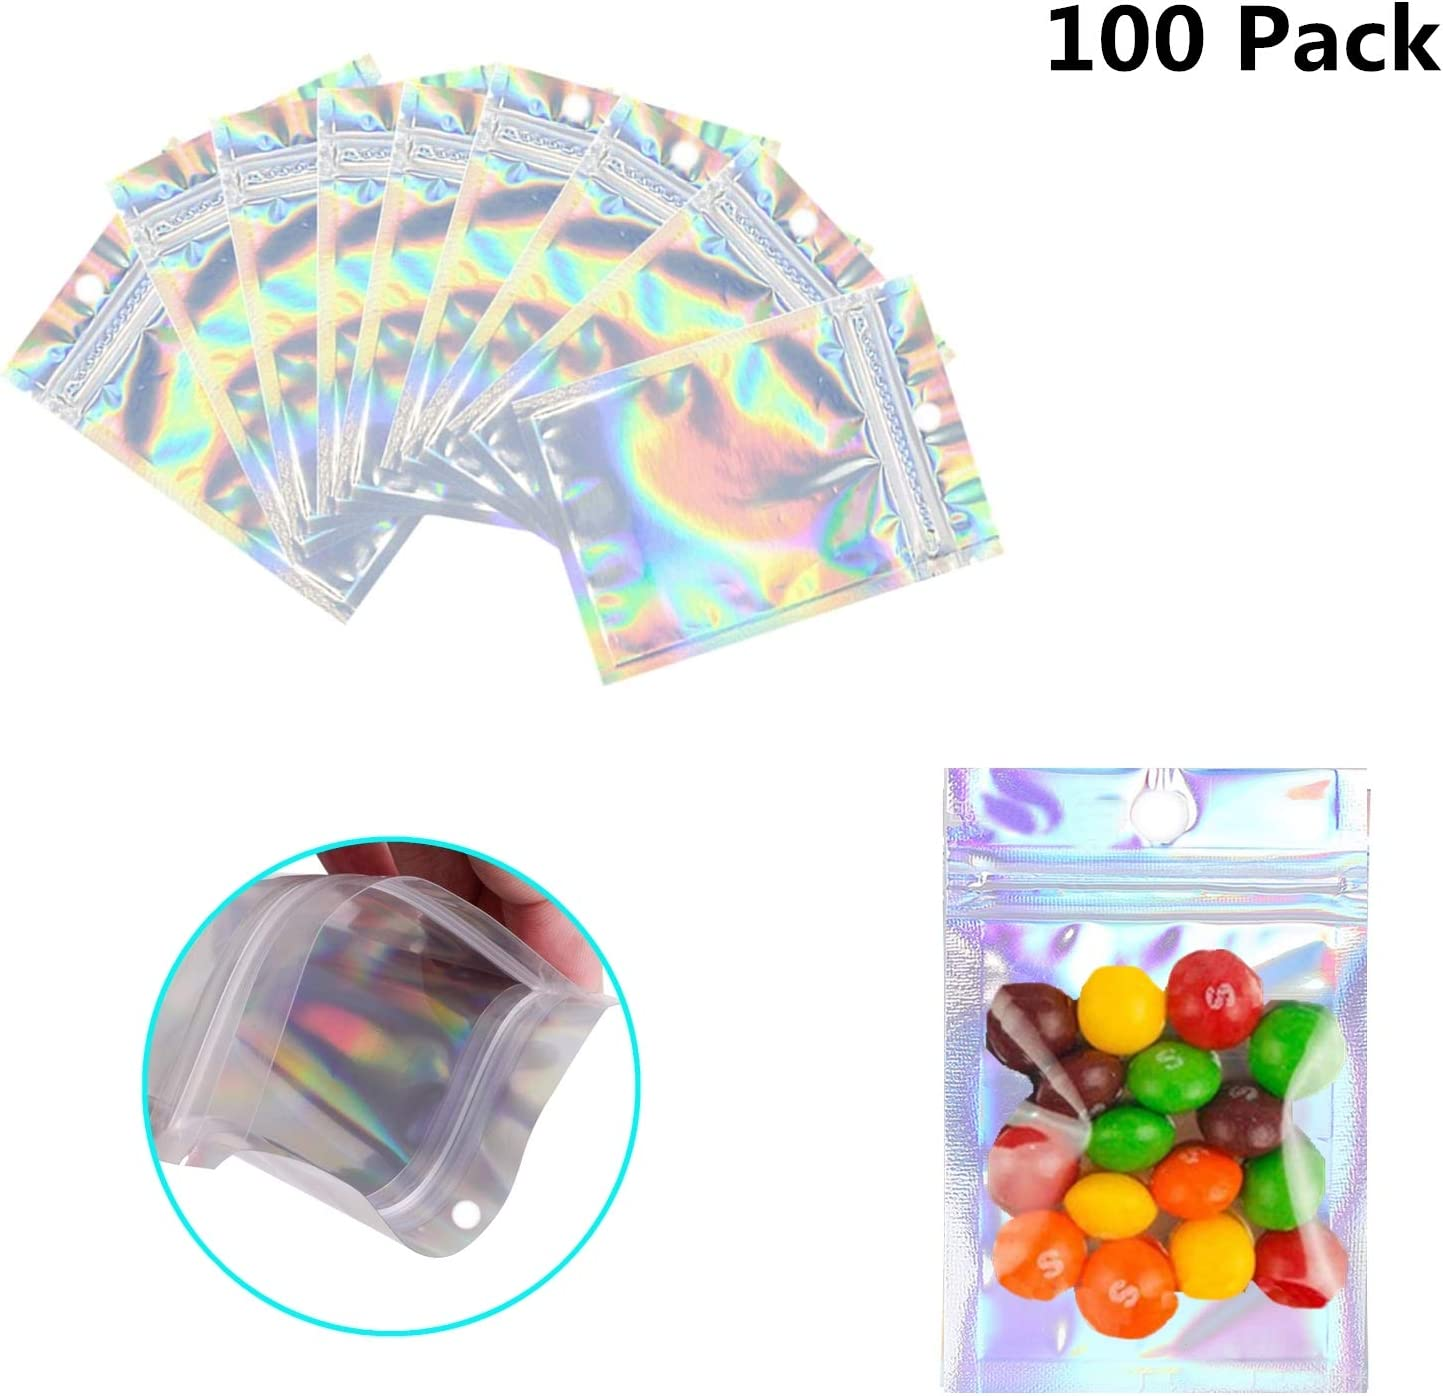 100 Pack Resealable Mylar Bags Smell Proof Pouch Aluminum Foil Packaging Plastic Ziplock Bag,Small Mylar Storage Bags For Candy,Jewelry,Screw,Holographic Rainbow Color (2.8 x 3.9 inch)